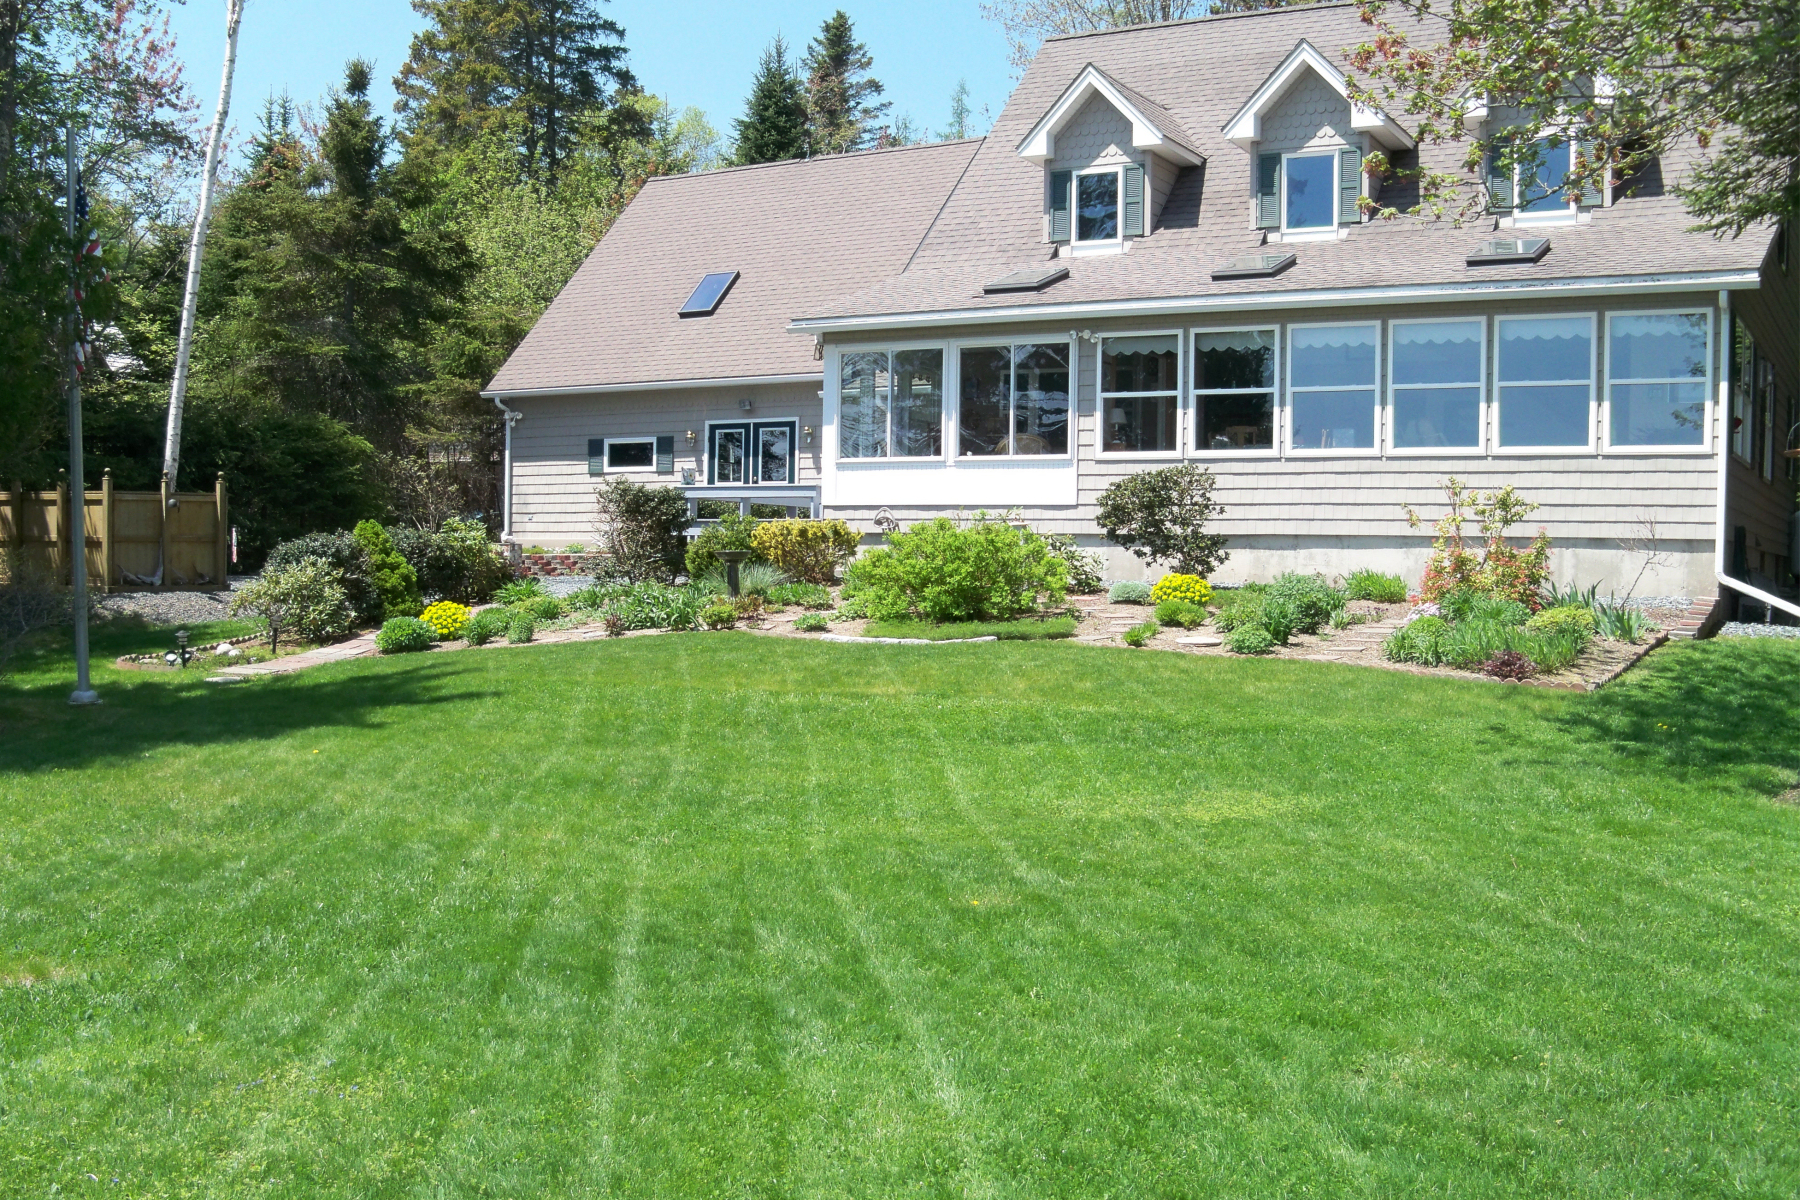 Single Family Home for Sale at Almost Paradise 20 Salt Pond Road Hancock, Maine 04640 United States